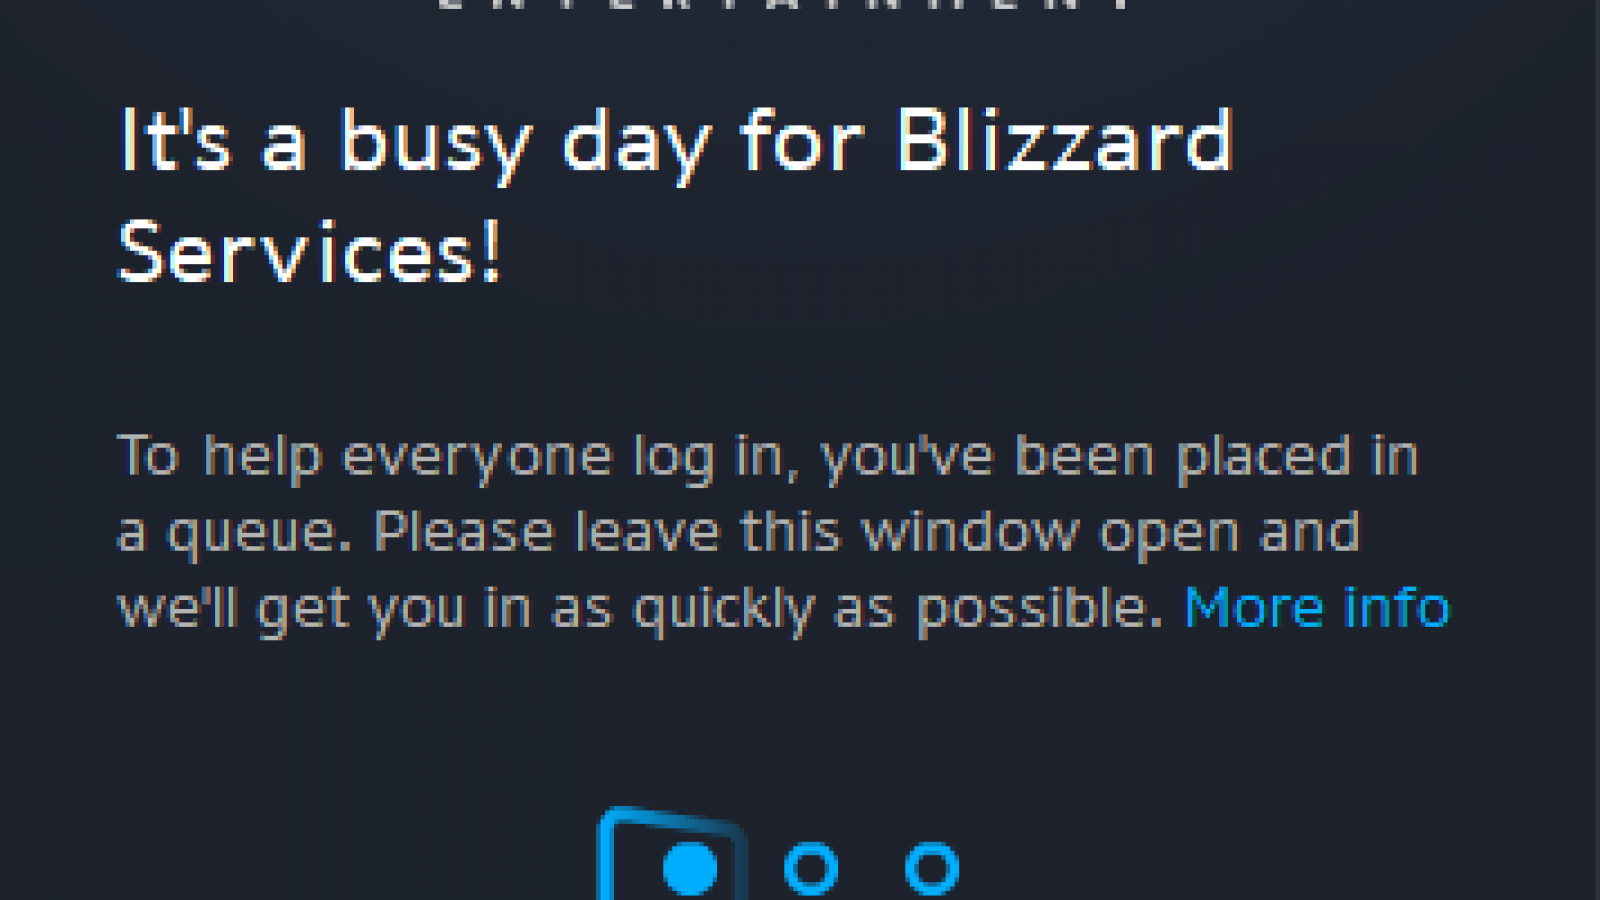 Blizzard Servers Down or Offline? Authentication Issues Causing Long